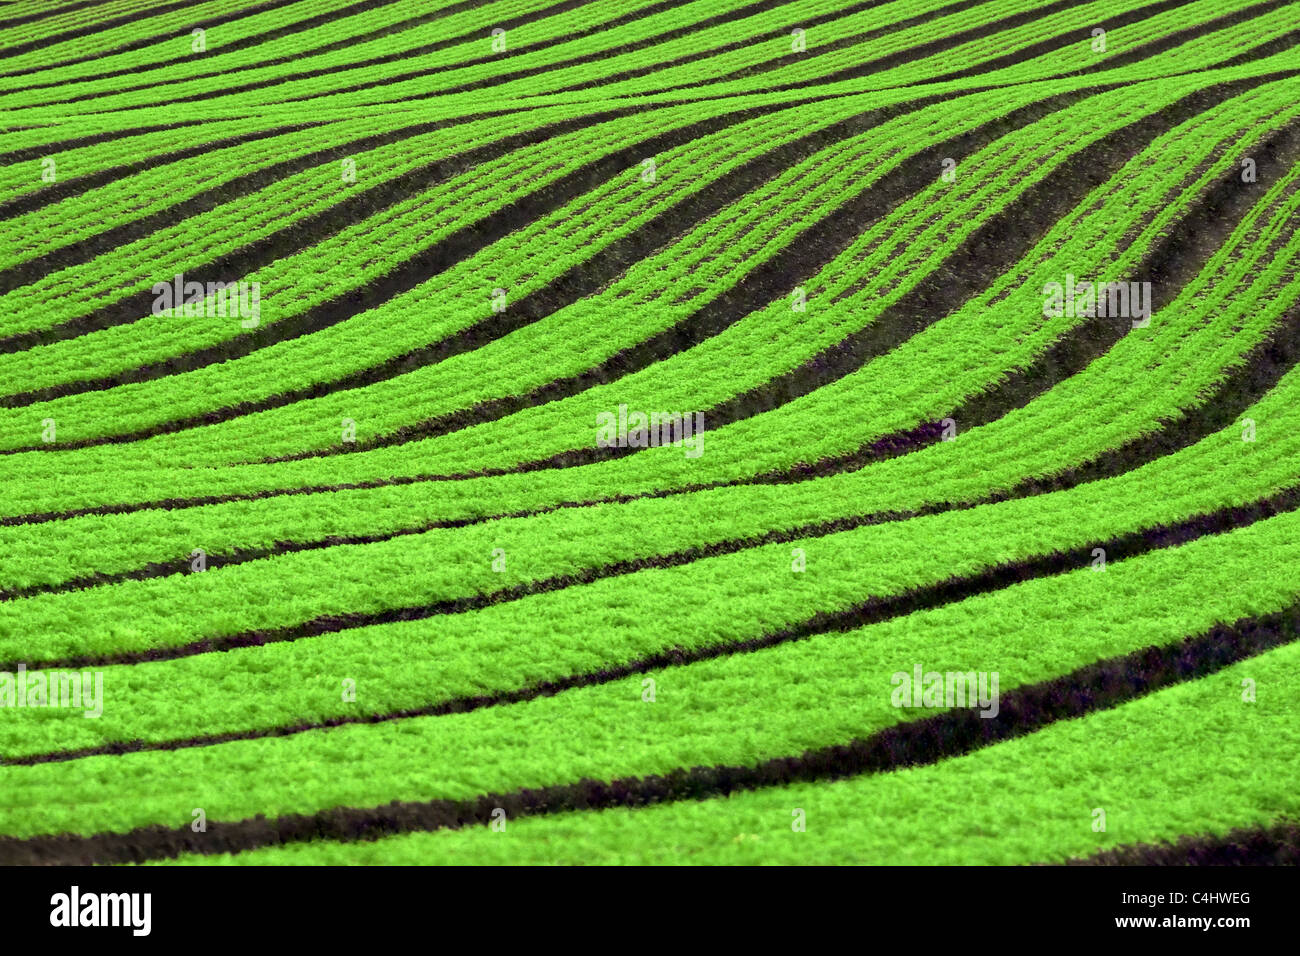 Rows of Carrot Crops Stock Photo